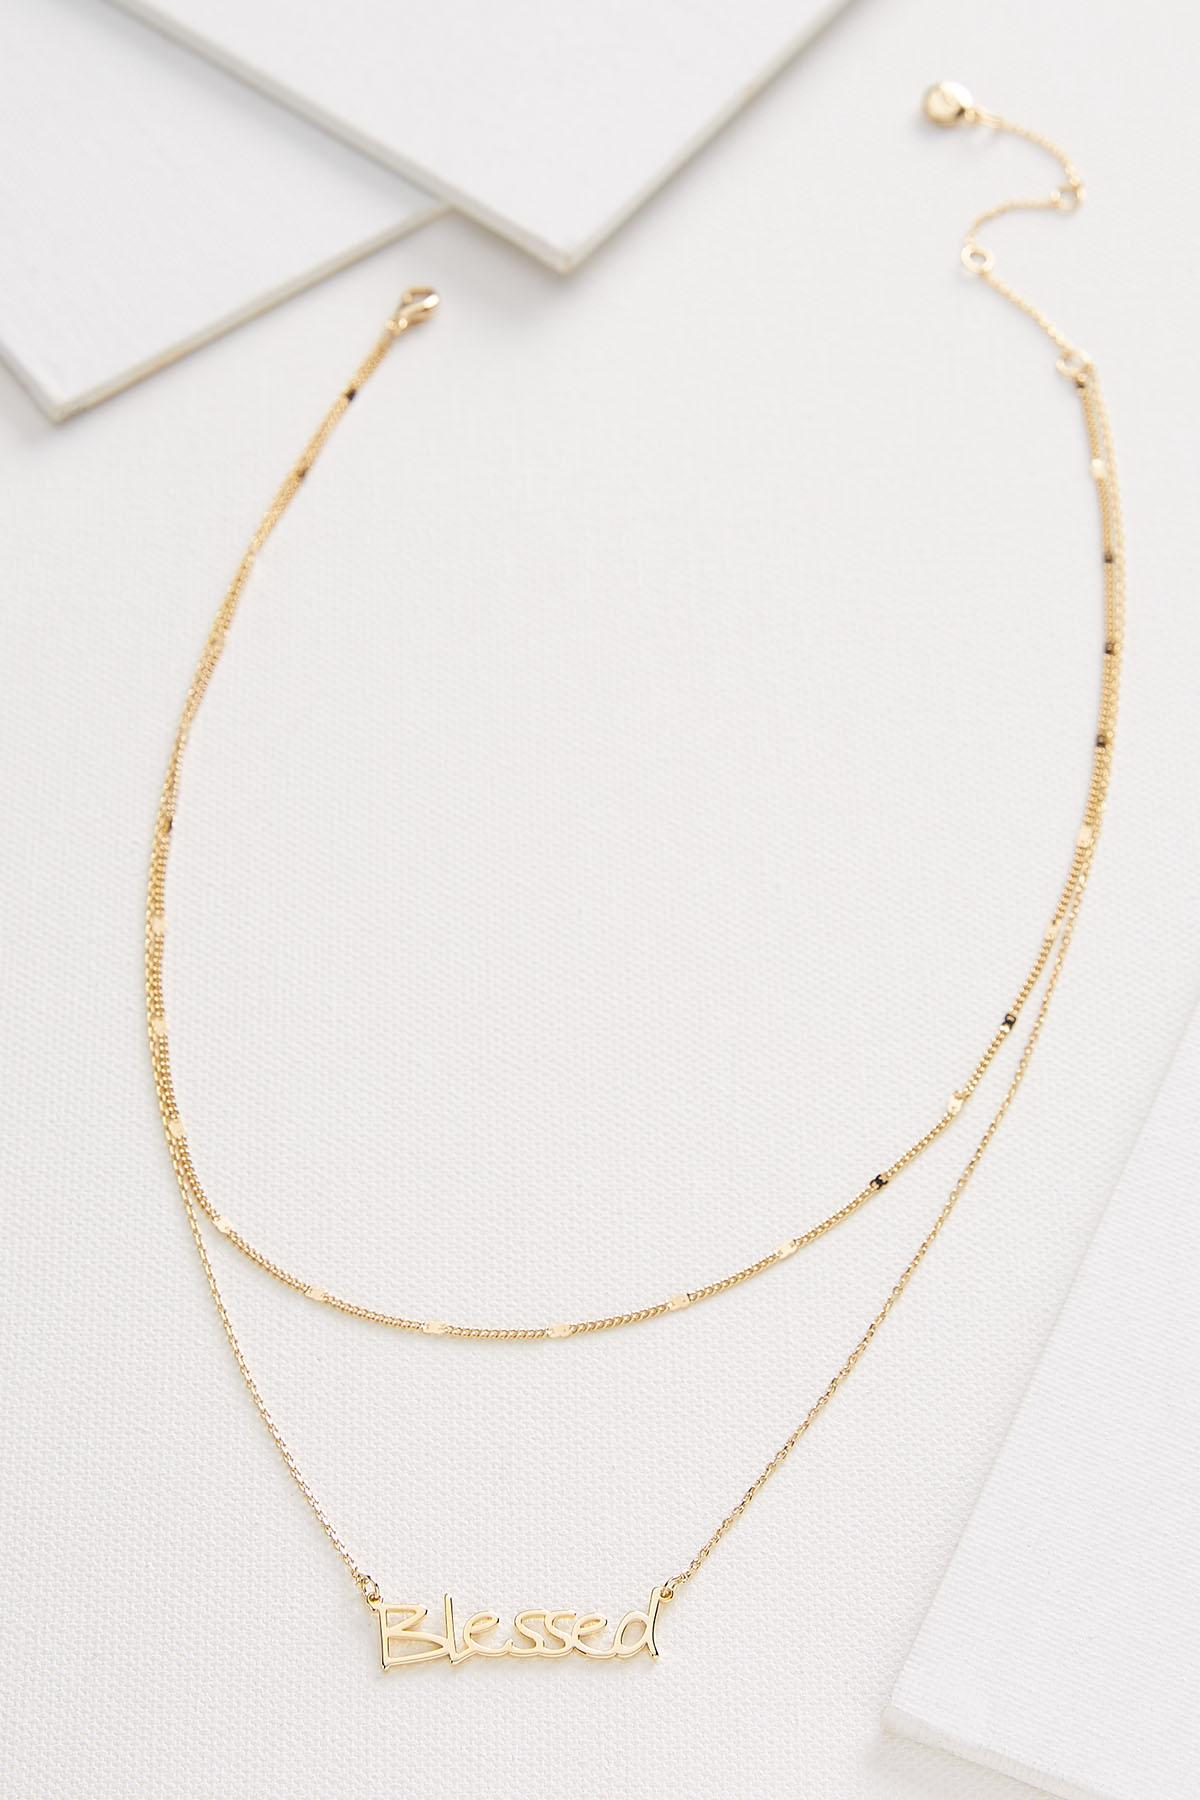 Blessed Layered Necklace